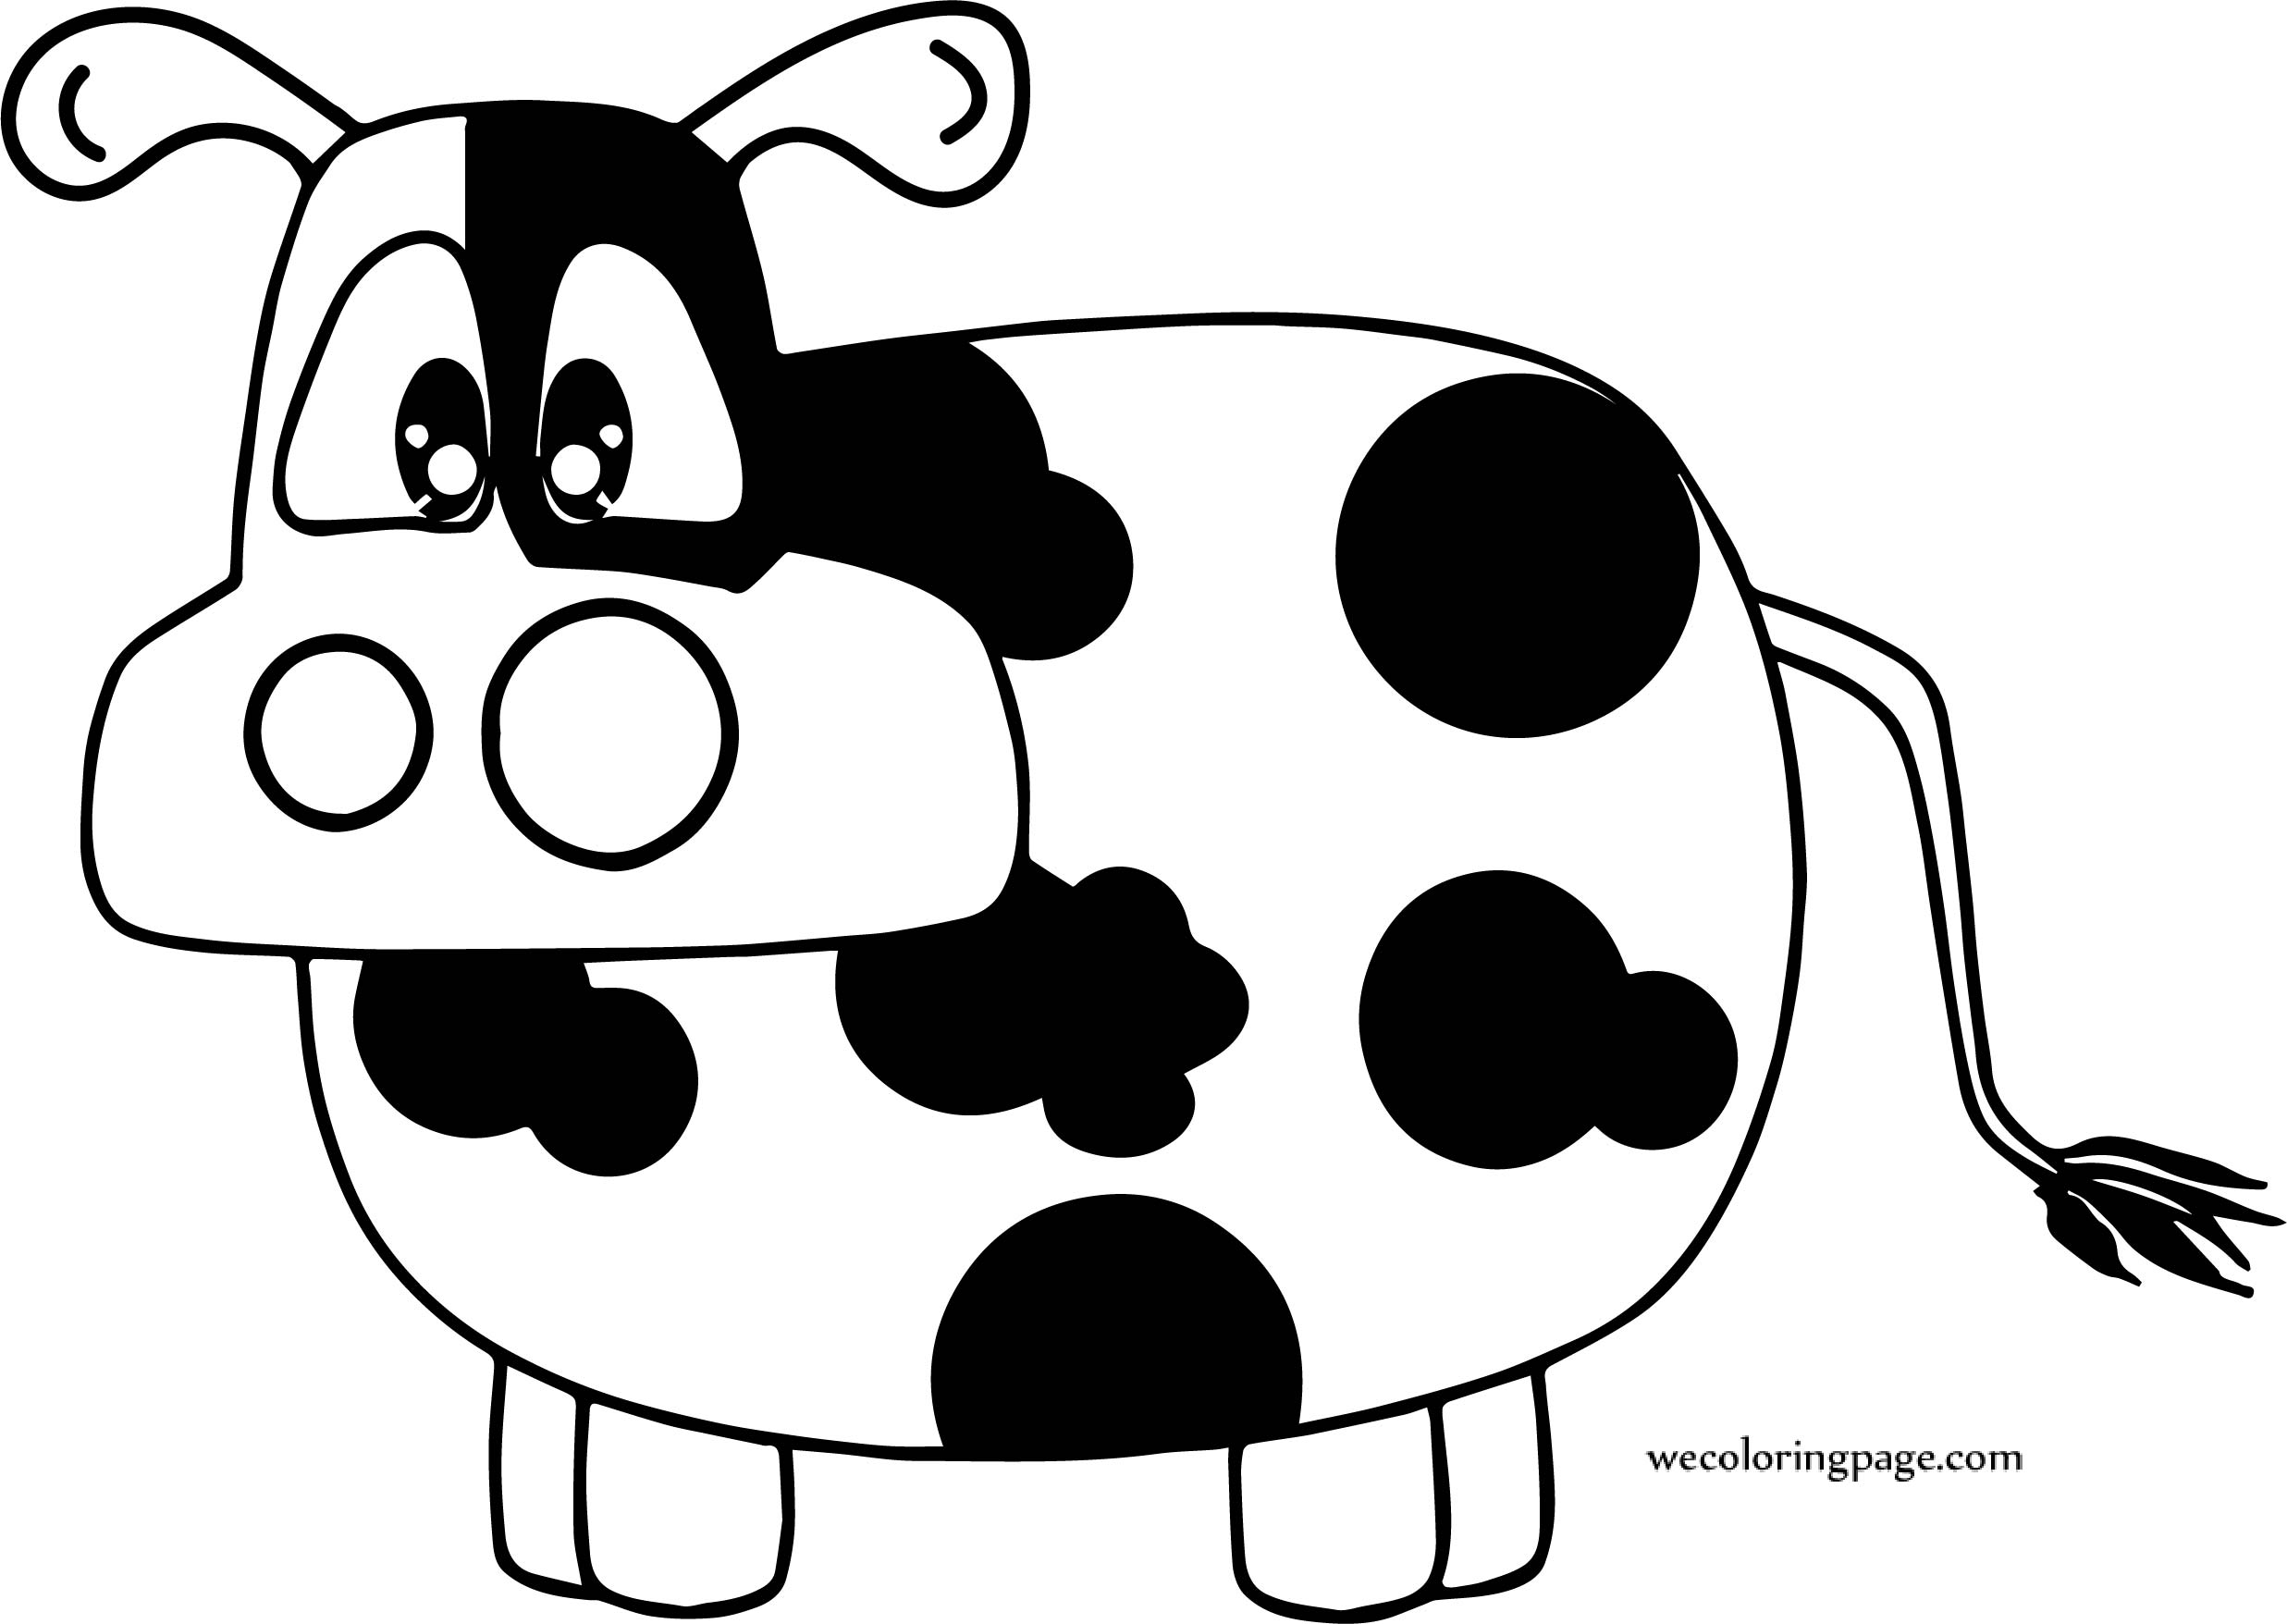 Gallery For Cow Coloring Page | Wecoloringpage